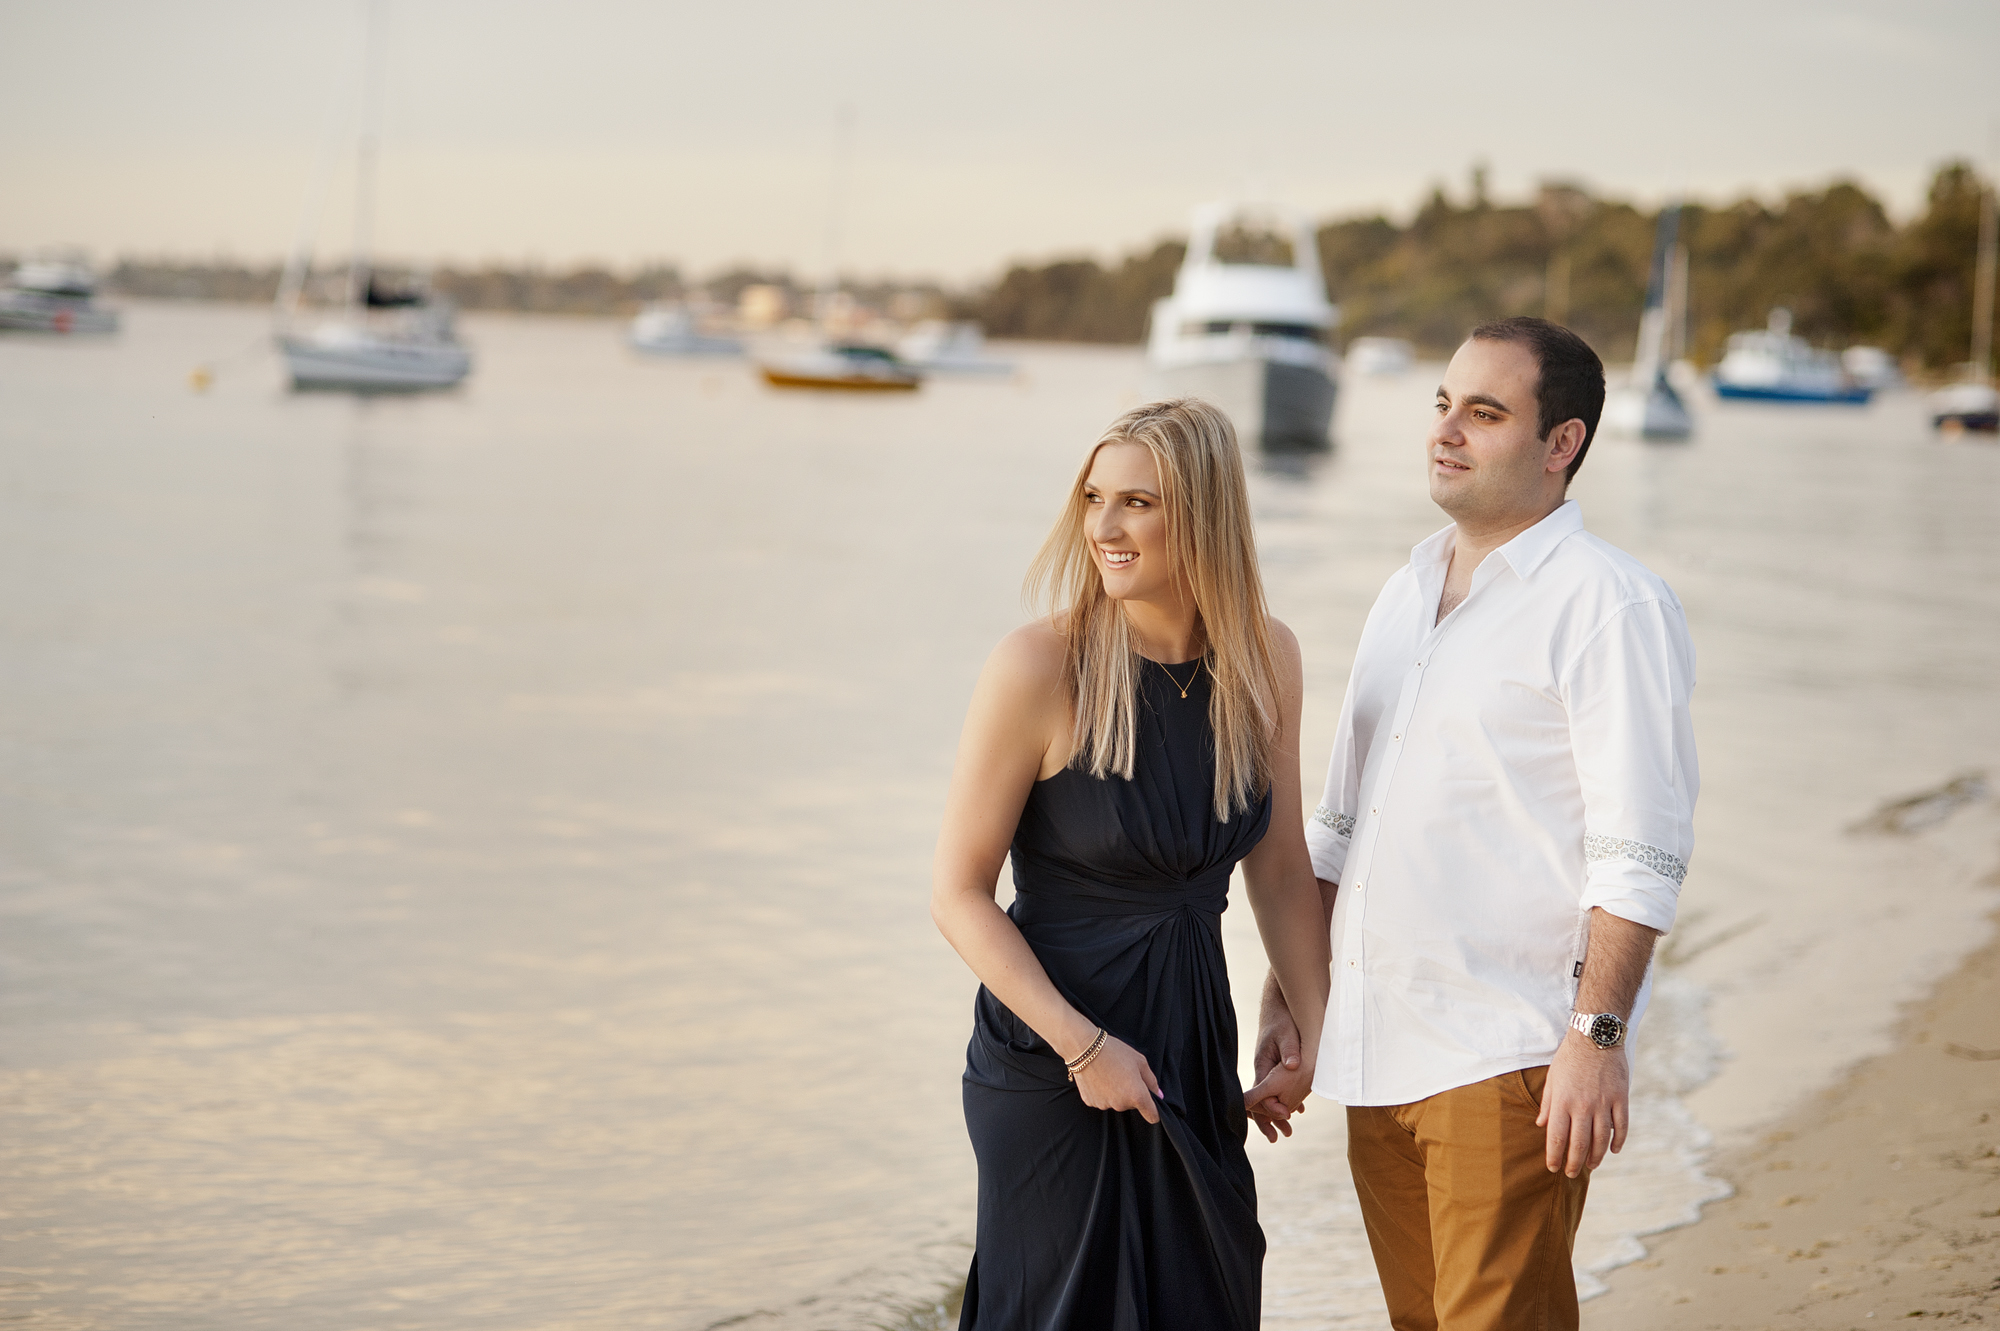 engagement photographer perth 06.jpg